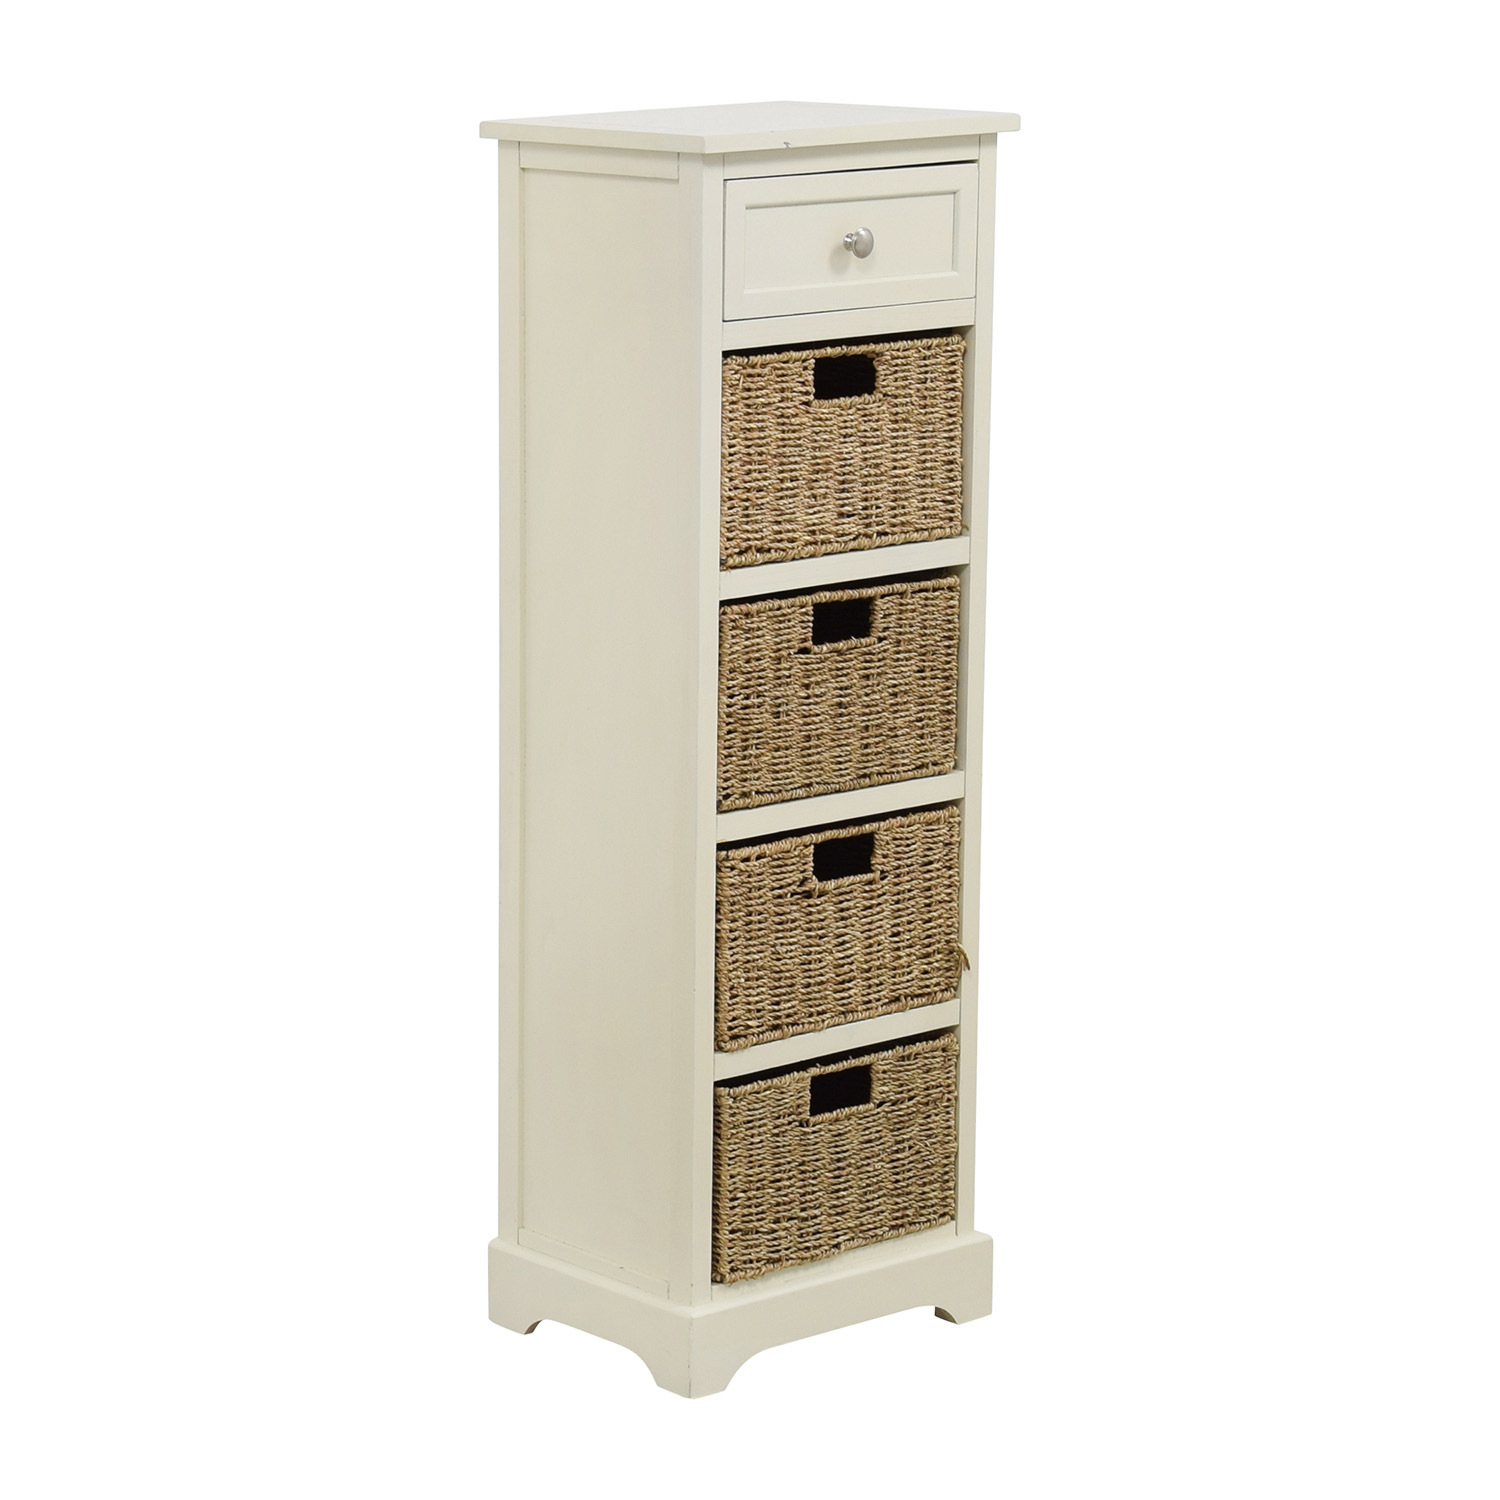 Tall White Storage Unit with Drawer and Wicker Baskets / Storage